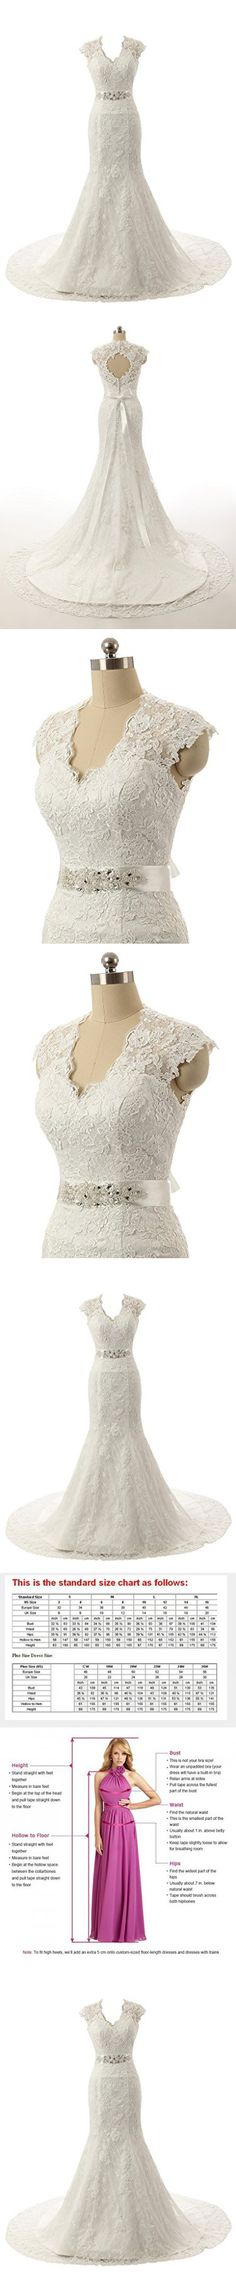 Ubridal Real Pictures Embroidery Lace Mermaid Court Wedding Dresses Bridal Gowns ivory 26W